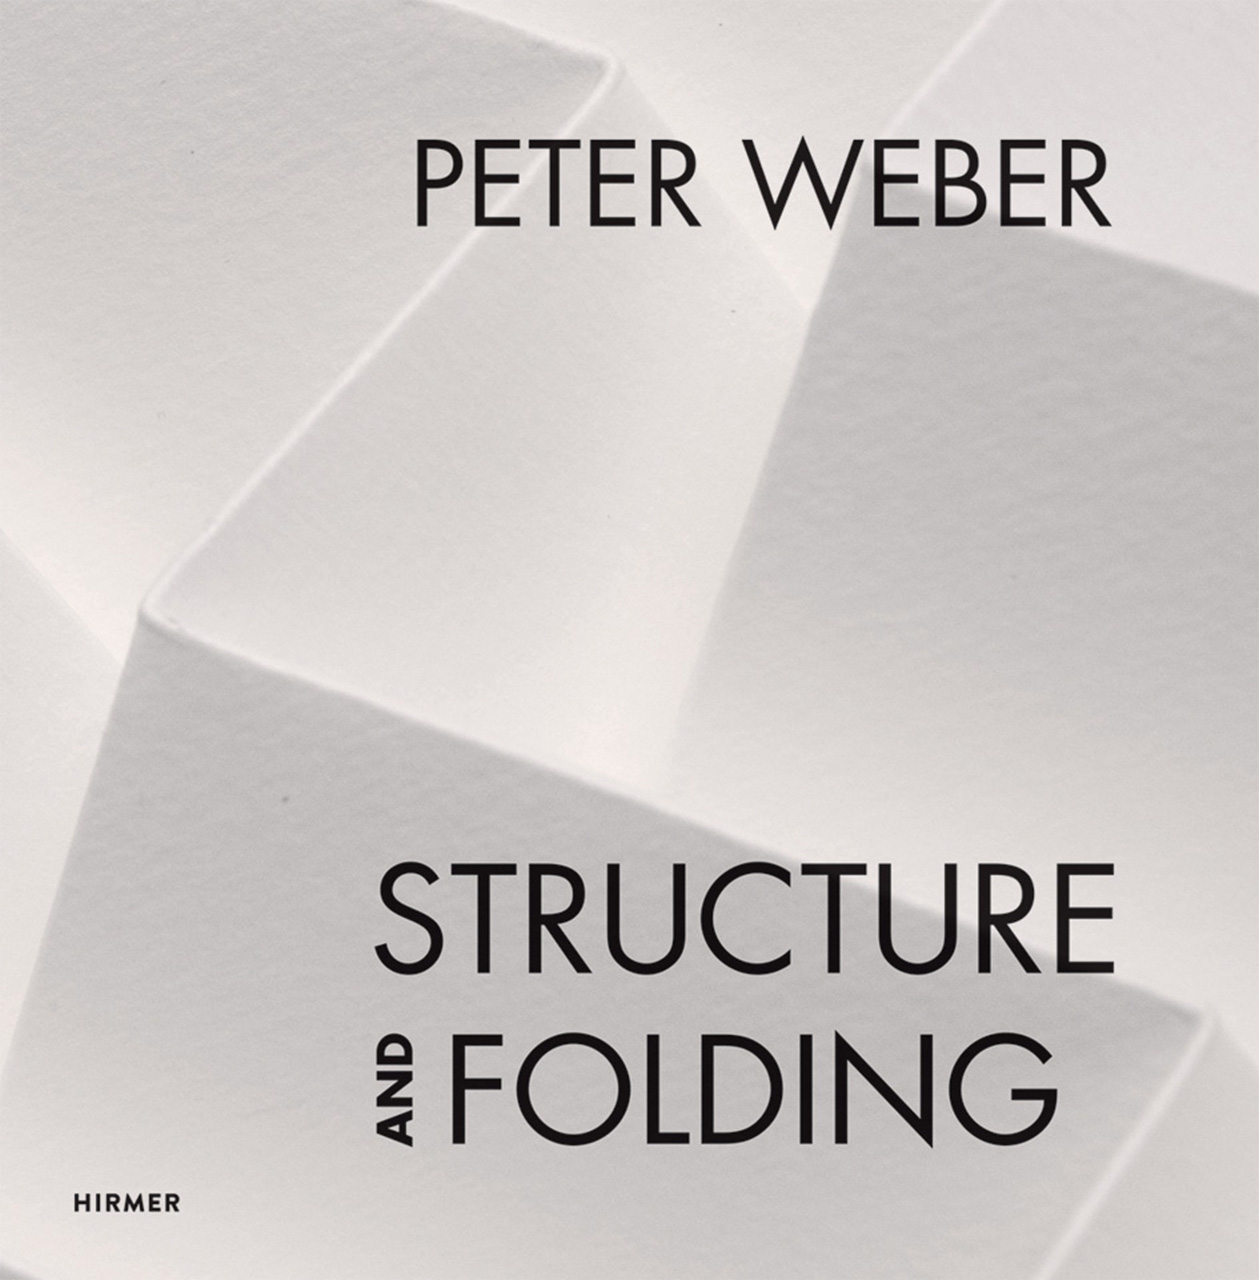 Peter Weber: Volume 1: Structure and Folding. Volume 2: Catalogue Raisonné, 1968-2018